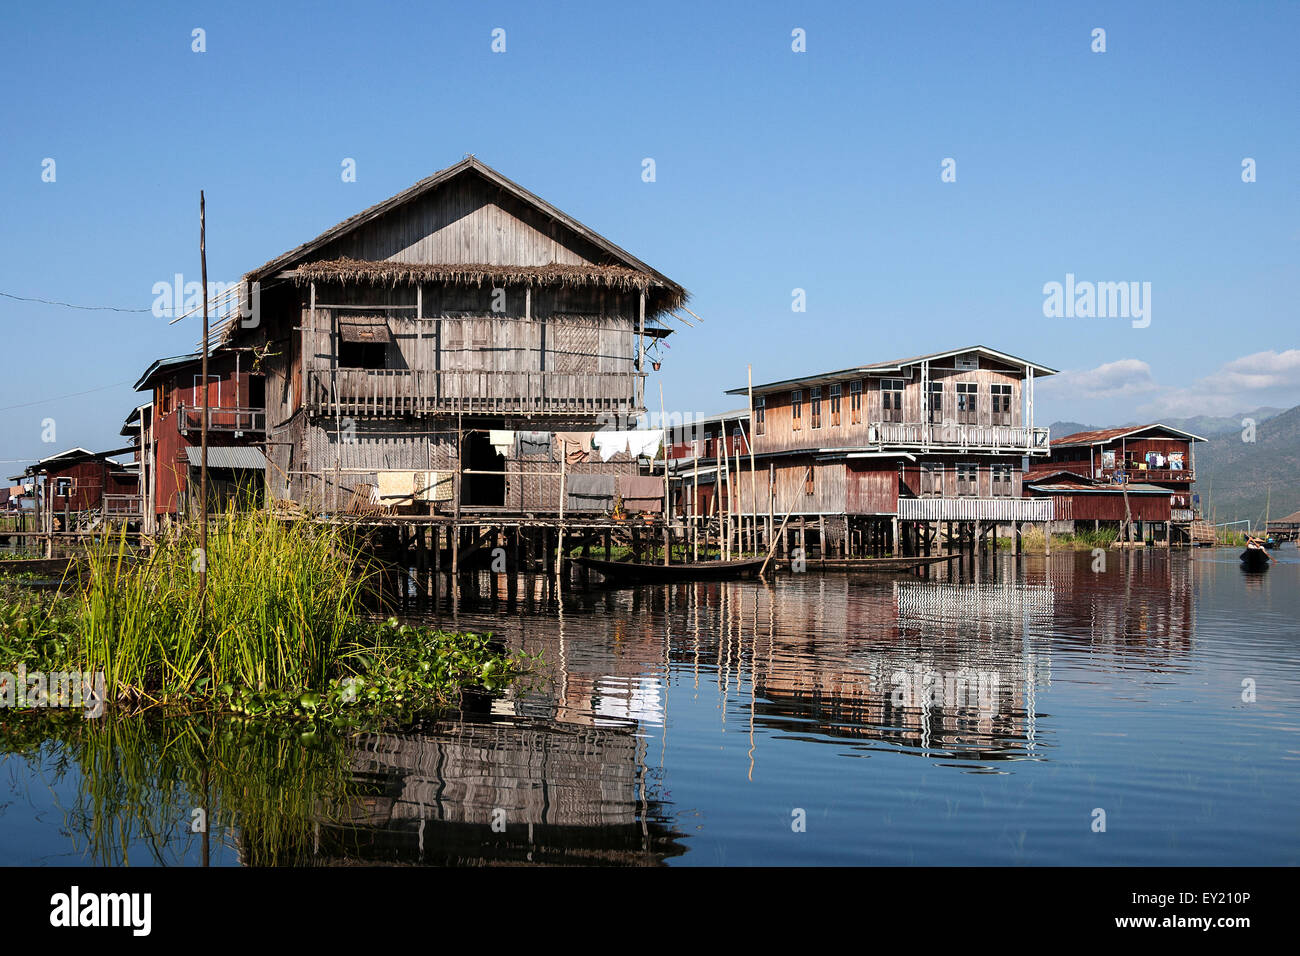 Traditional stilt houses in Inle Lake, reflection in the water, Shan State, Myanmar - Stock Image